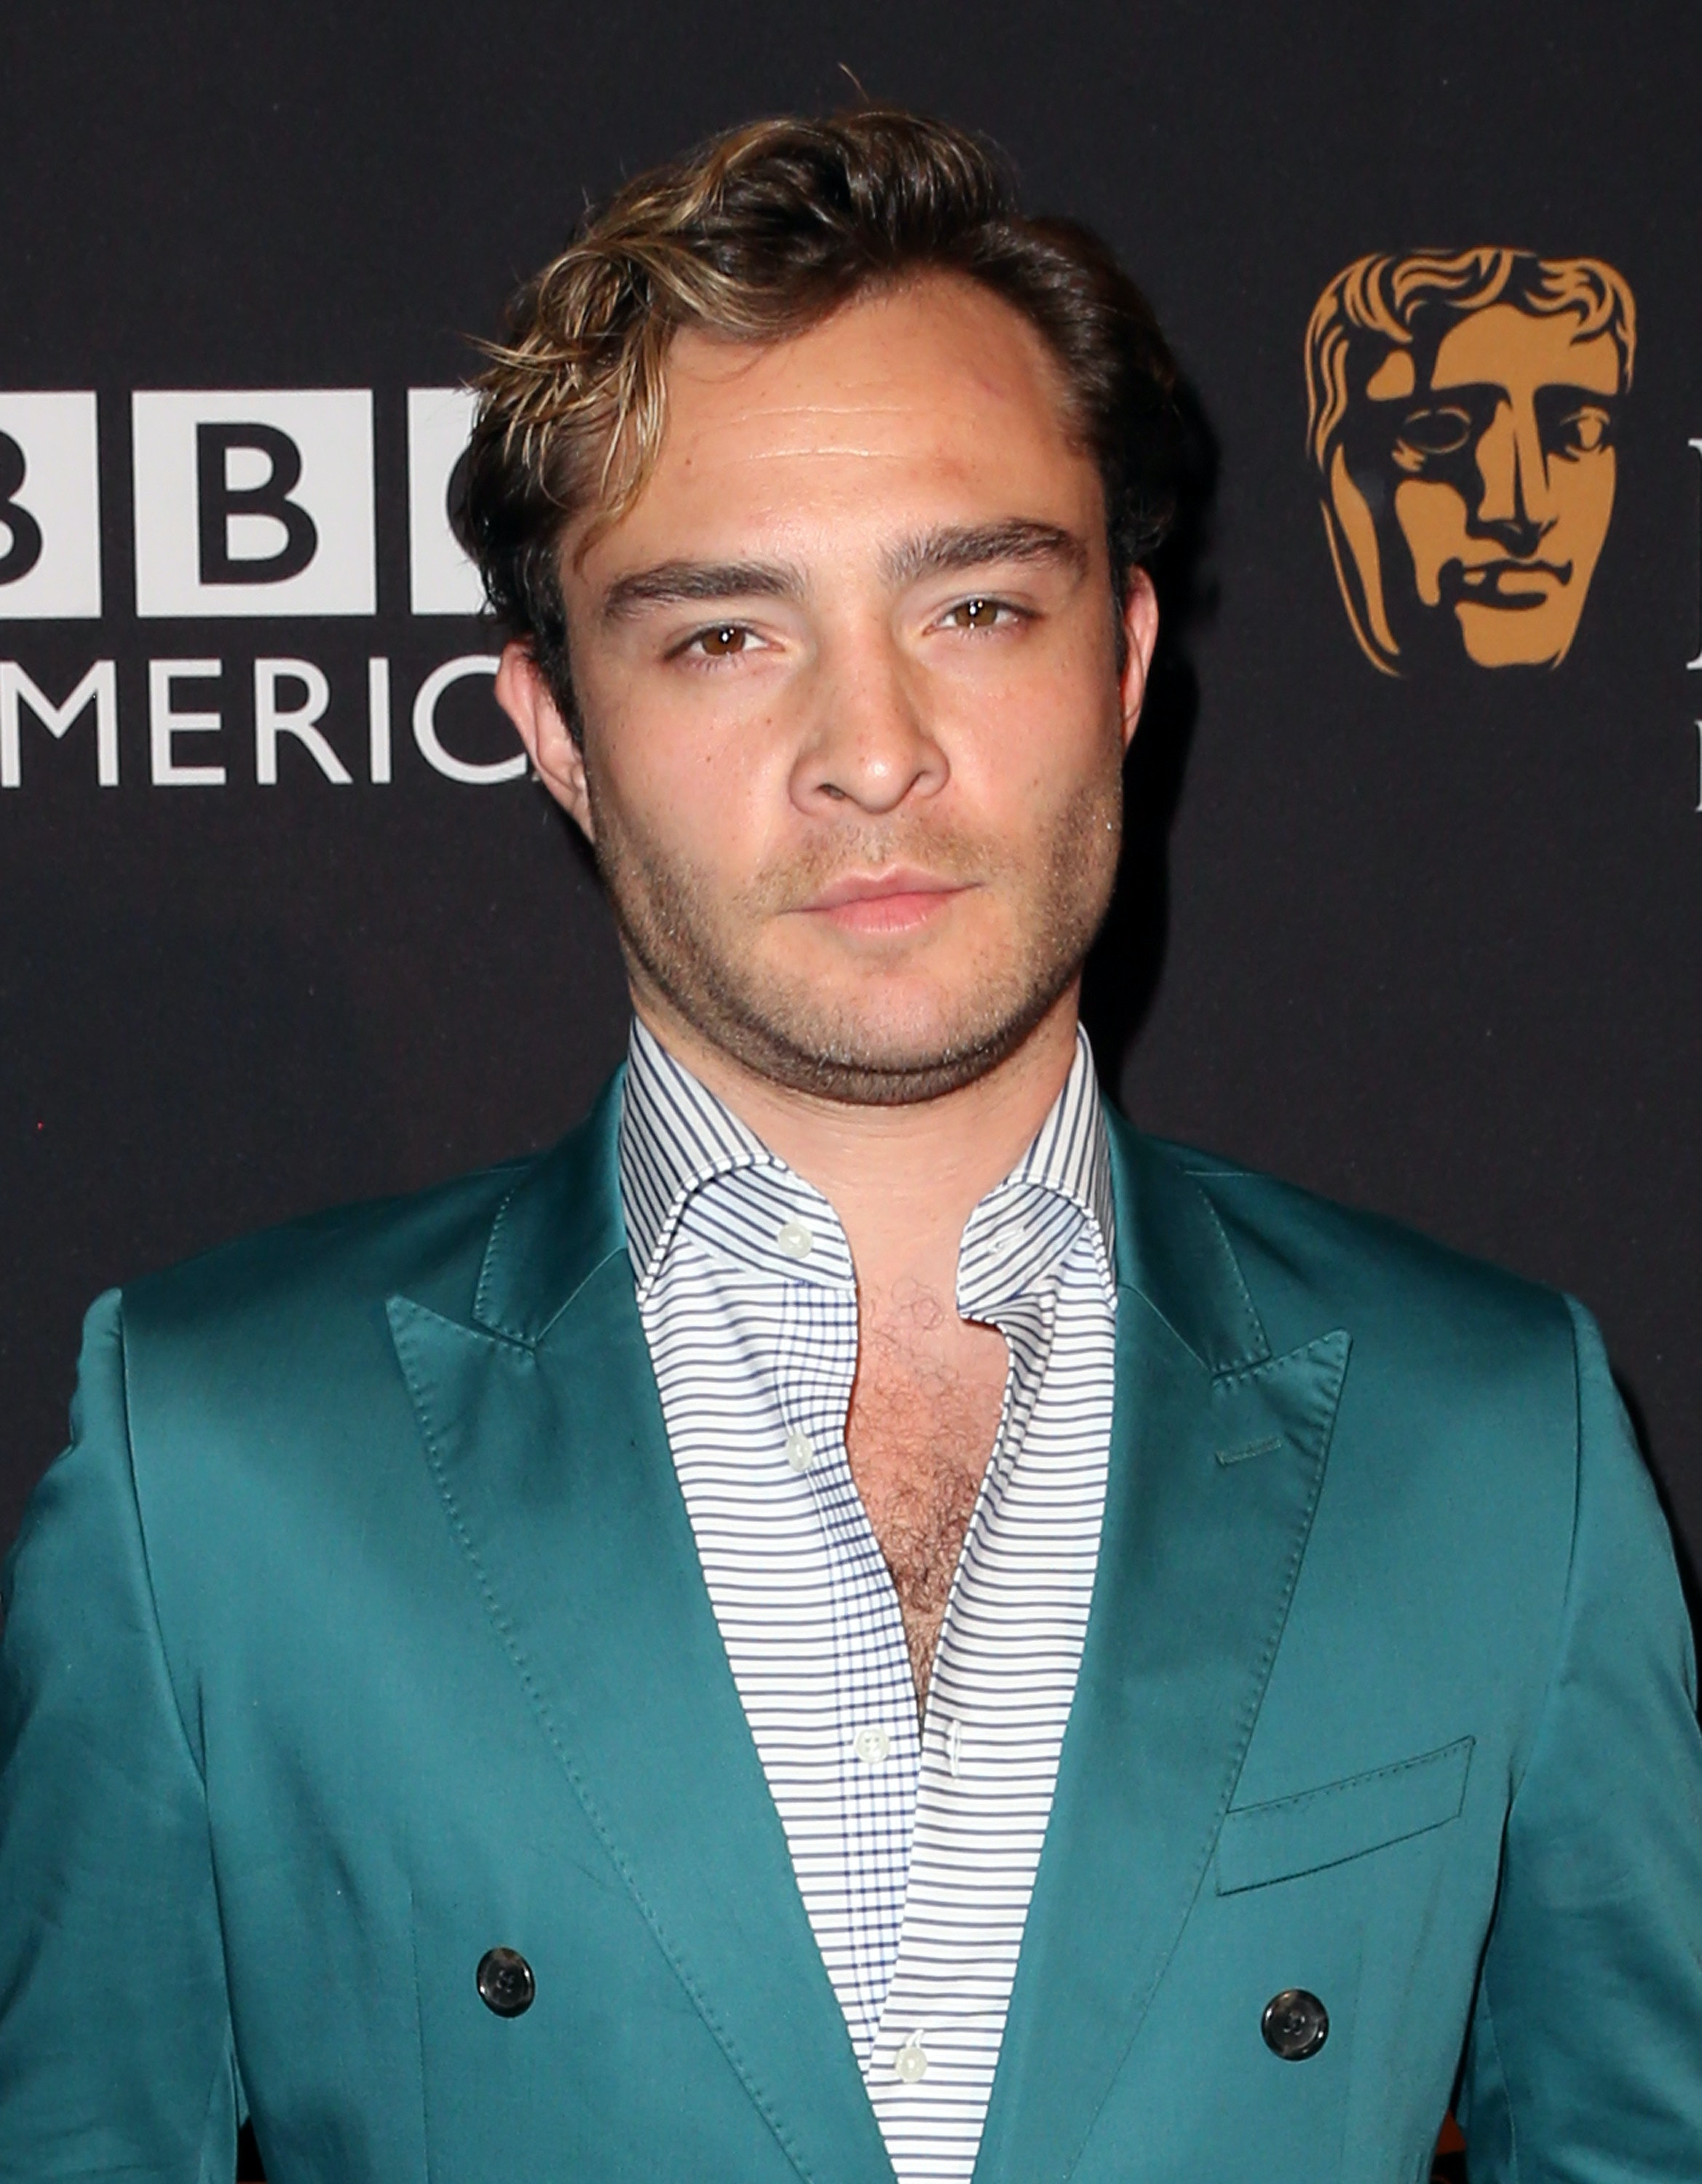 'Gossip Girl' Star Ed Westwick Accused of Rape